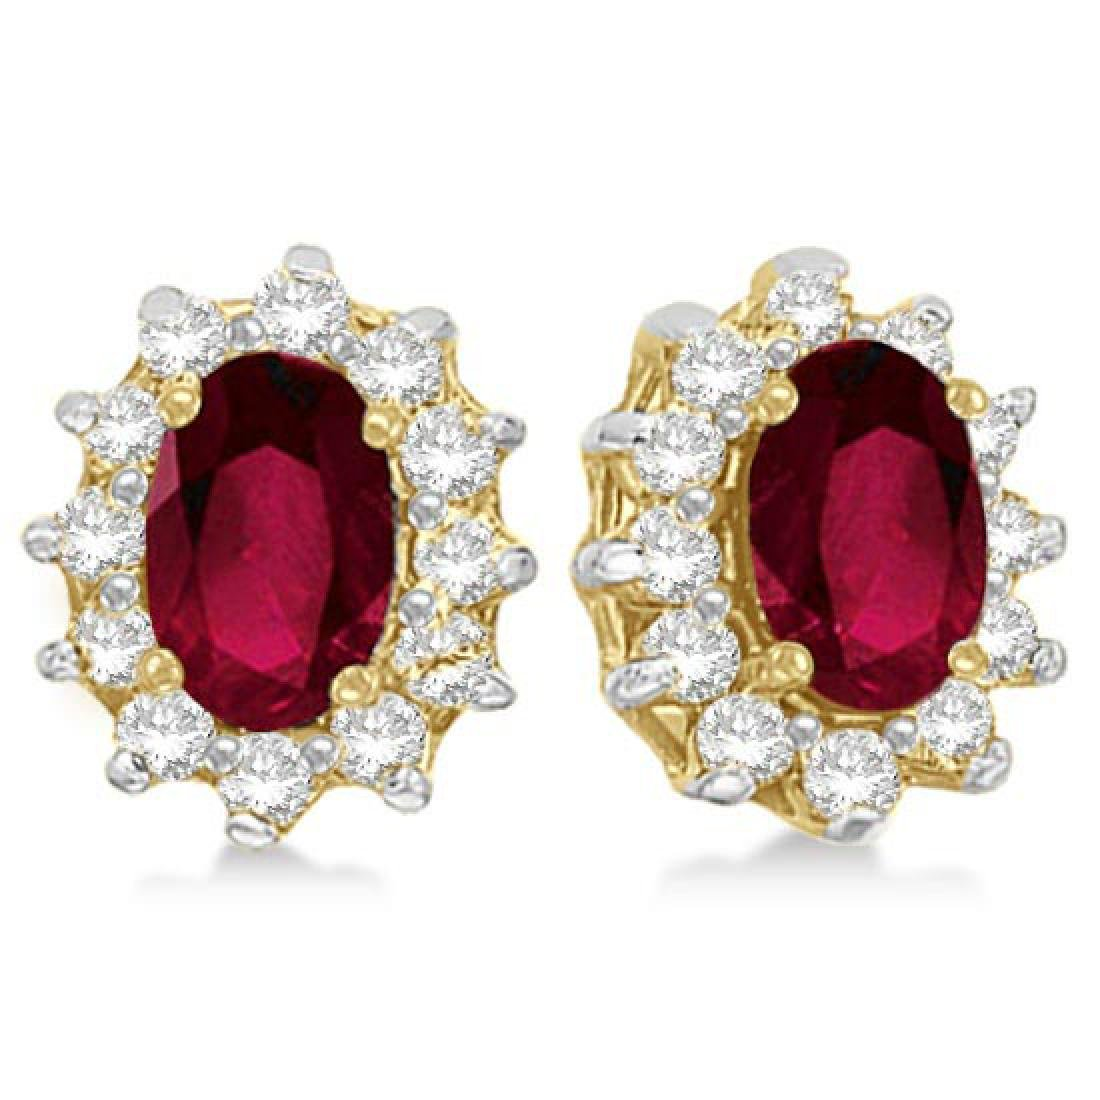 Oval Ruby and Diamond Accented Earrings 14k Yellow Gold